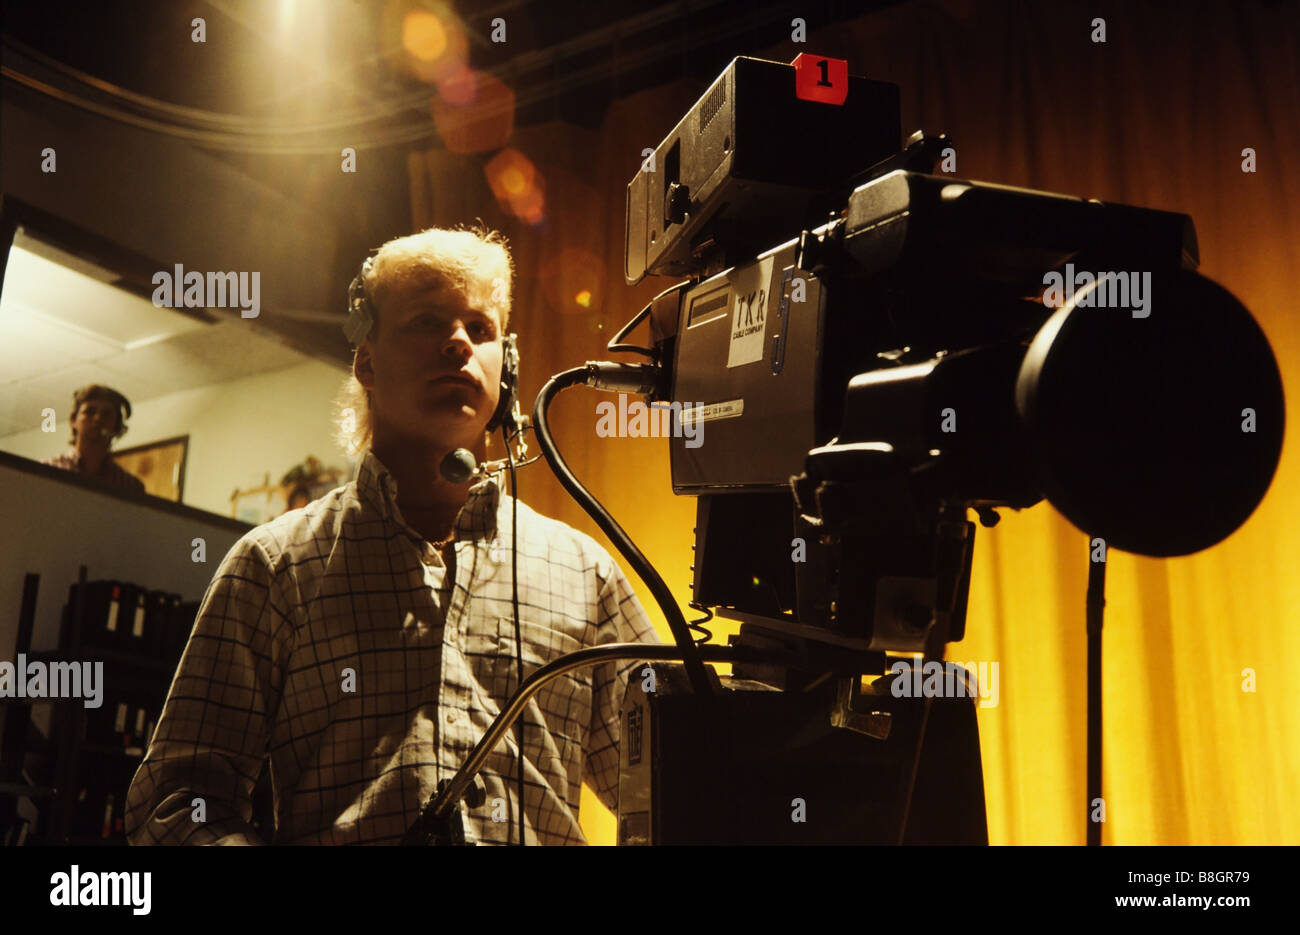 People working,TV cameraman in Television Studio - Stock Image